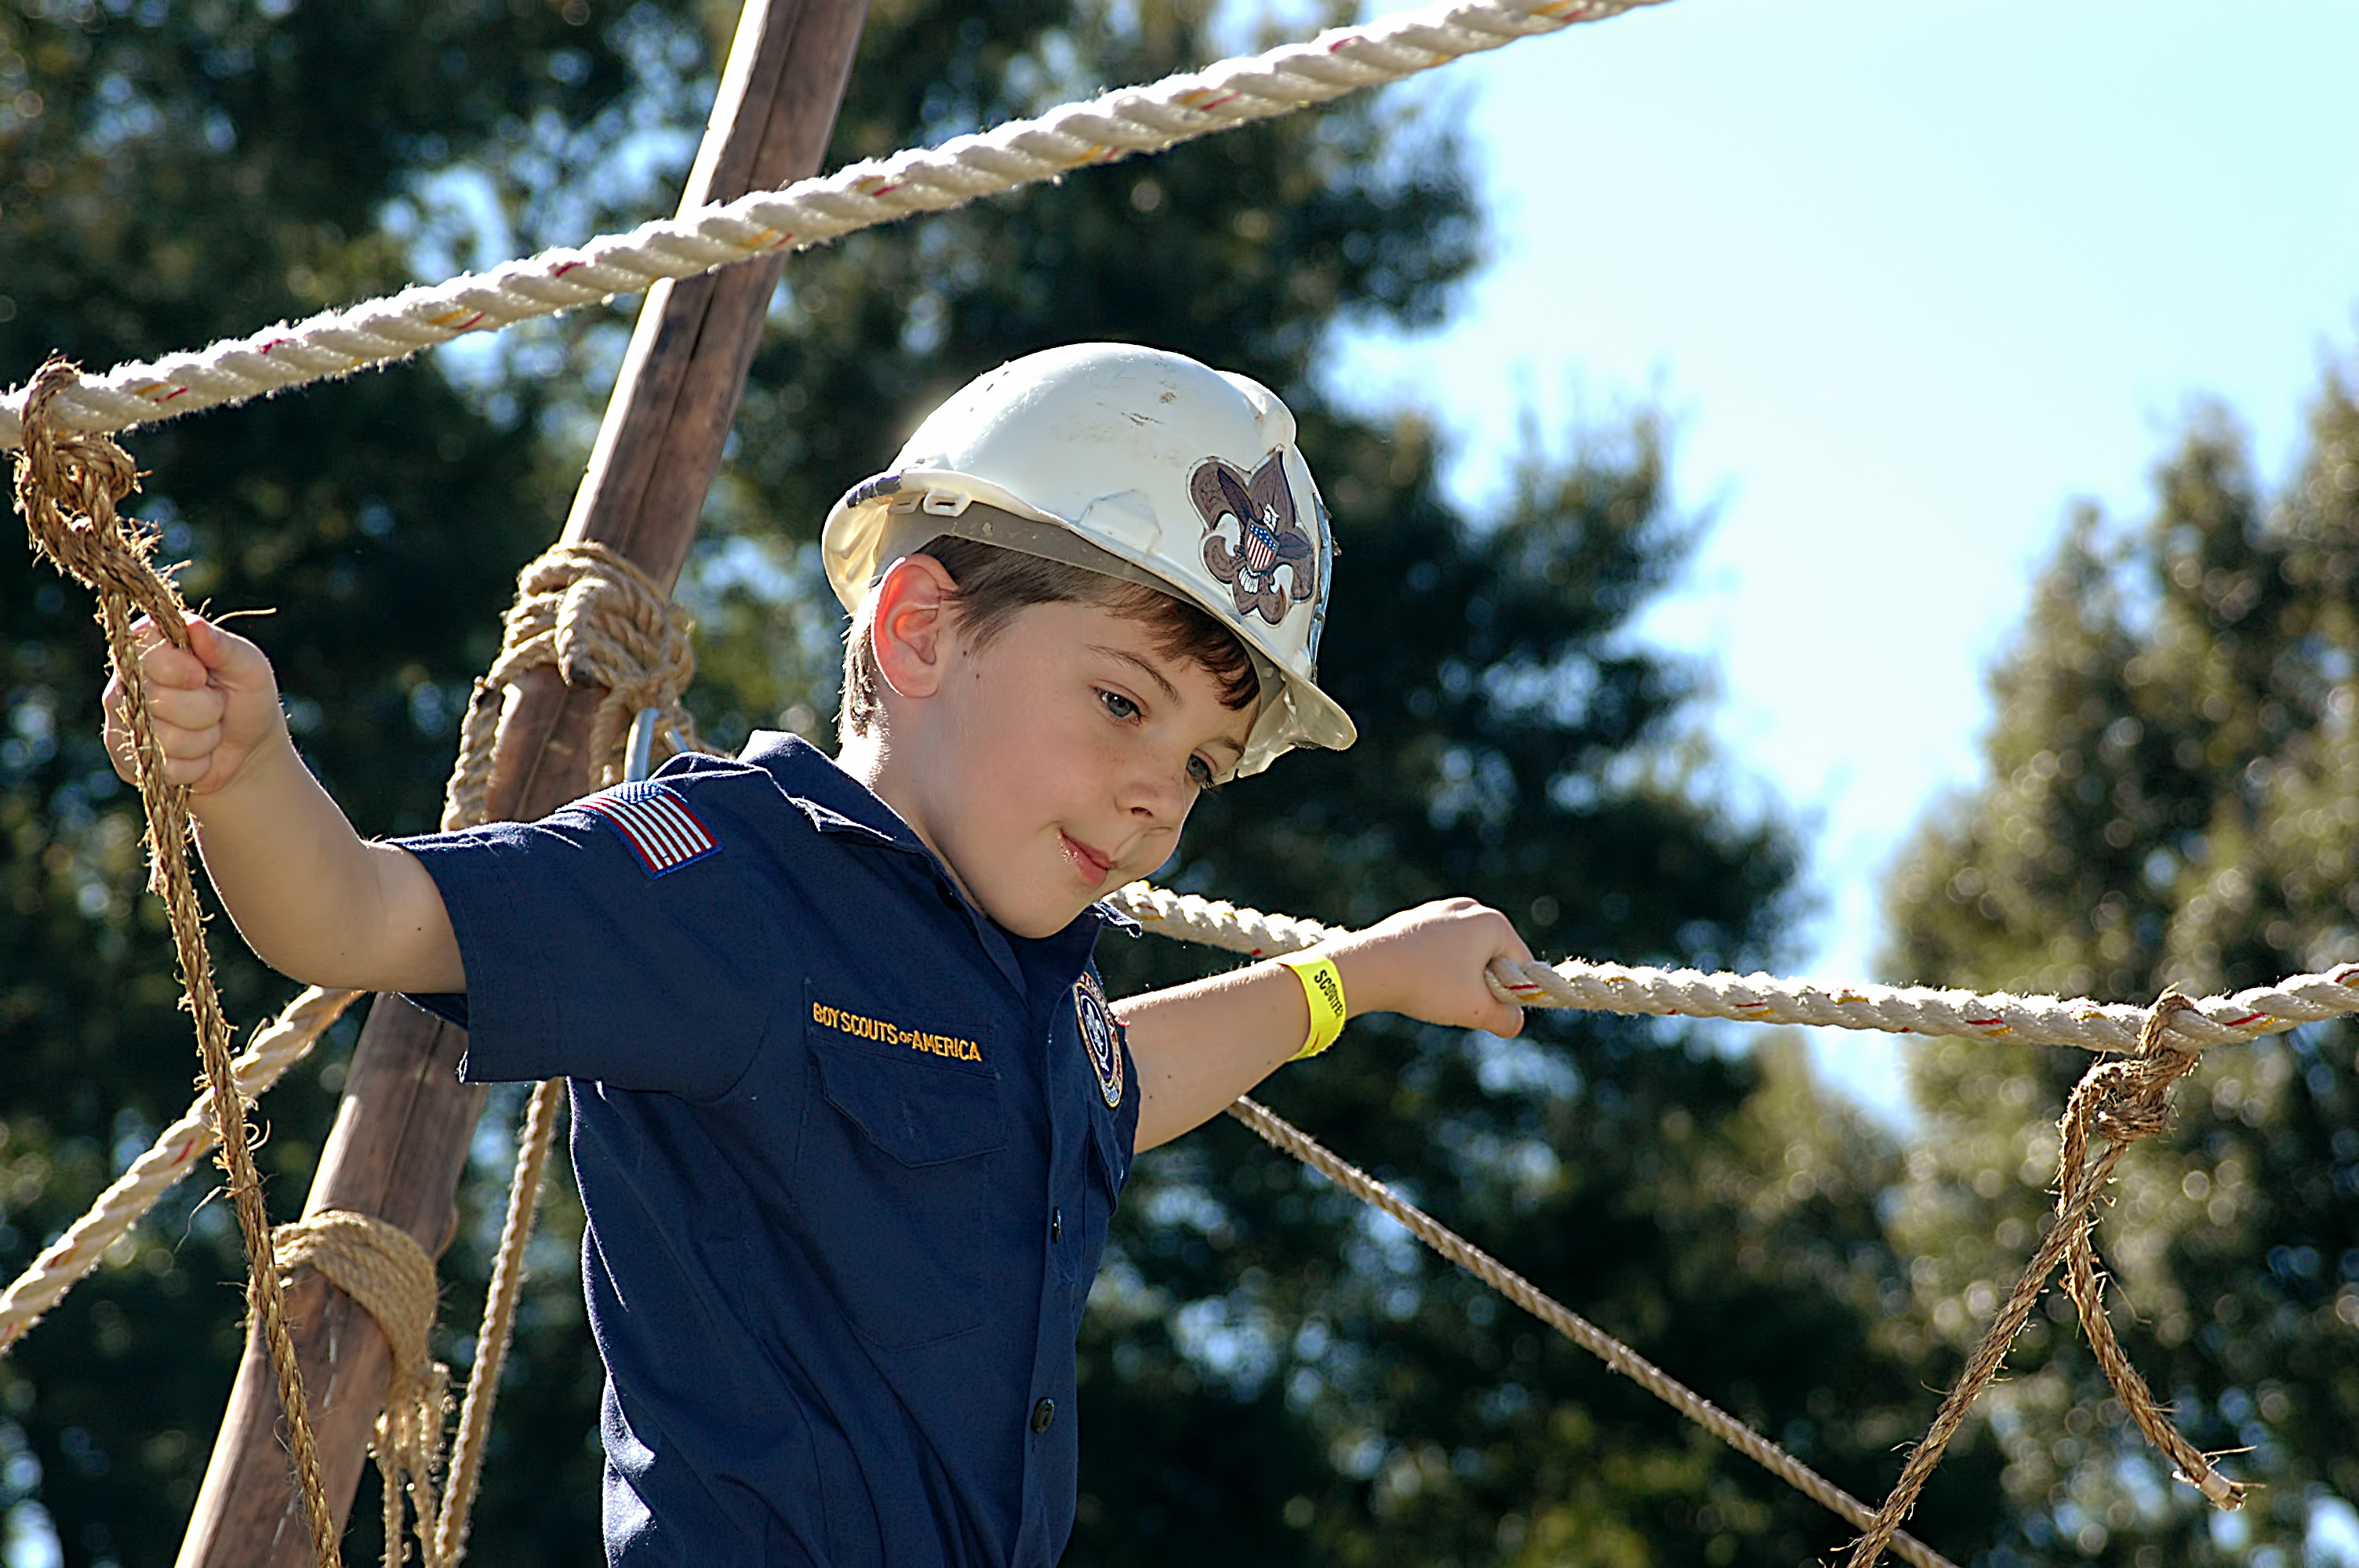 A Cub Scout crosses a bridge